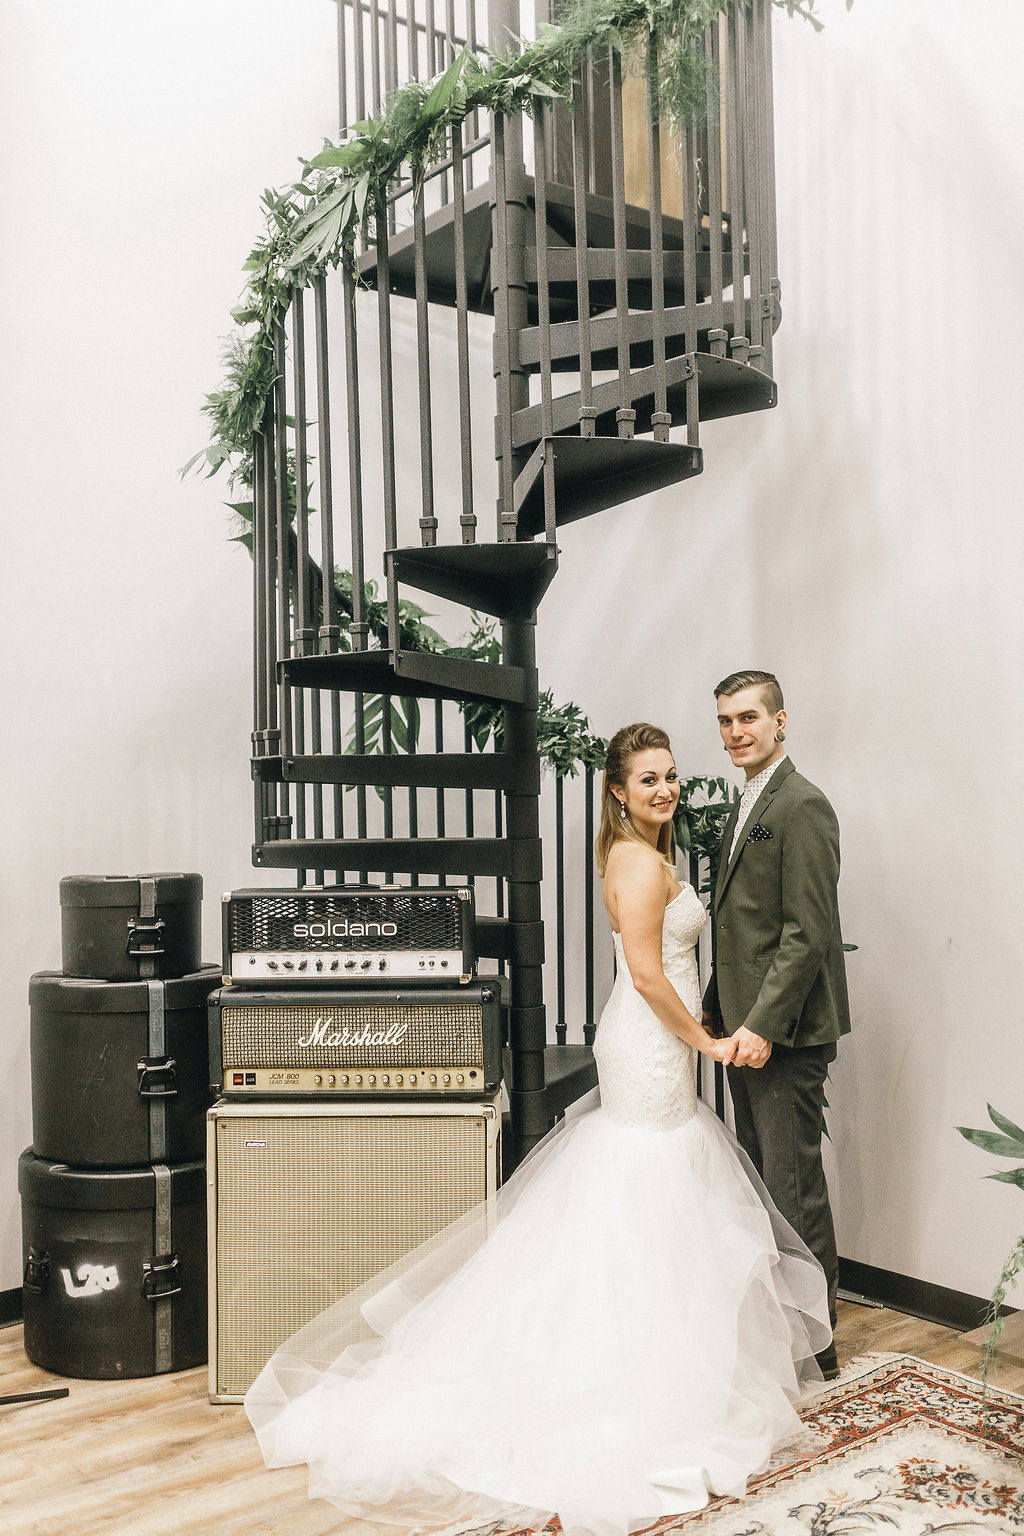 Stairway-to-Matrimony-mackensey-alexander-the-garage-savannah-ivory-and-beau-bridal-boutique-azi-blush-by-hayley-paige-indie-wedding-music-wedding-recording-studio-wedding-savannah-wedding-planner-savannah-florist-savannah-bridal-gowns-26.jpg